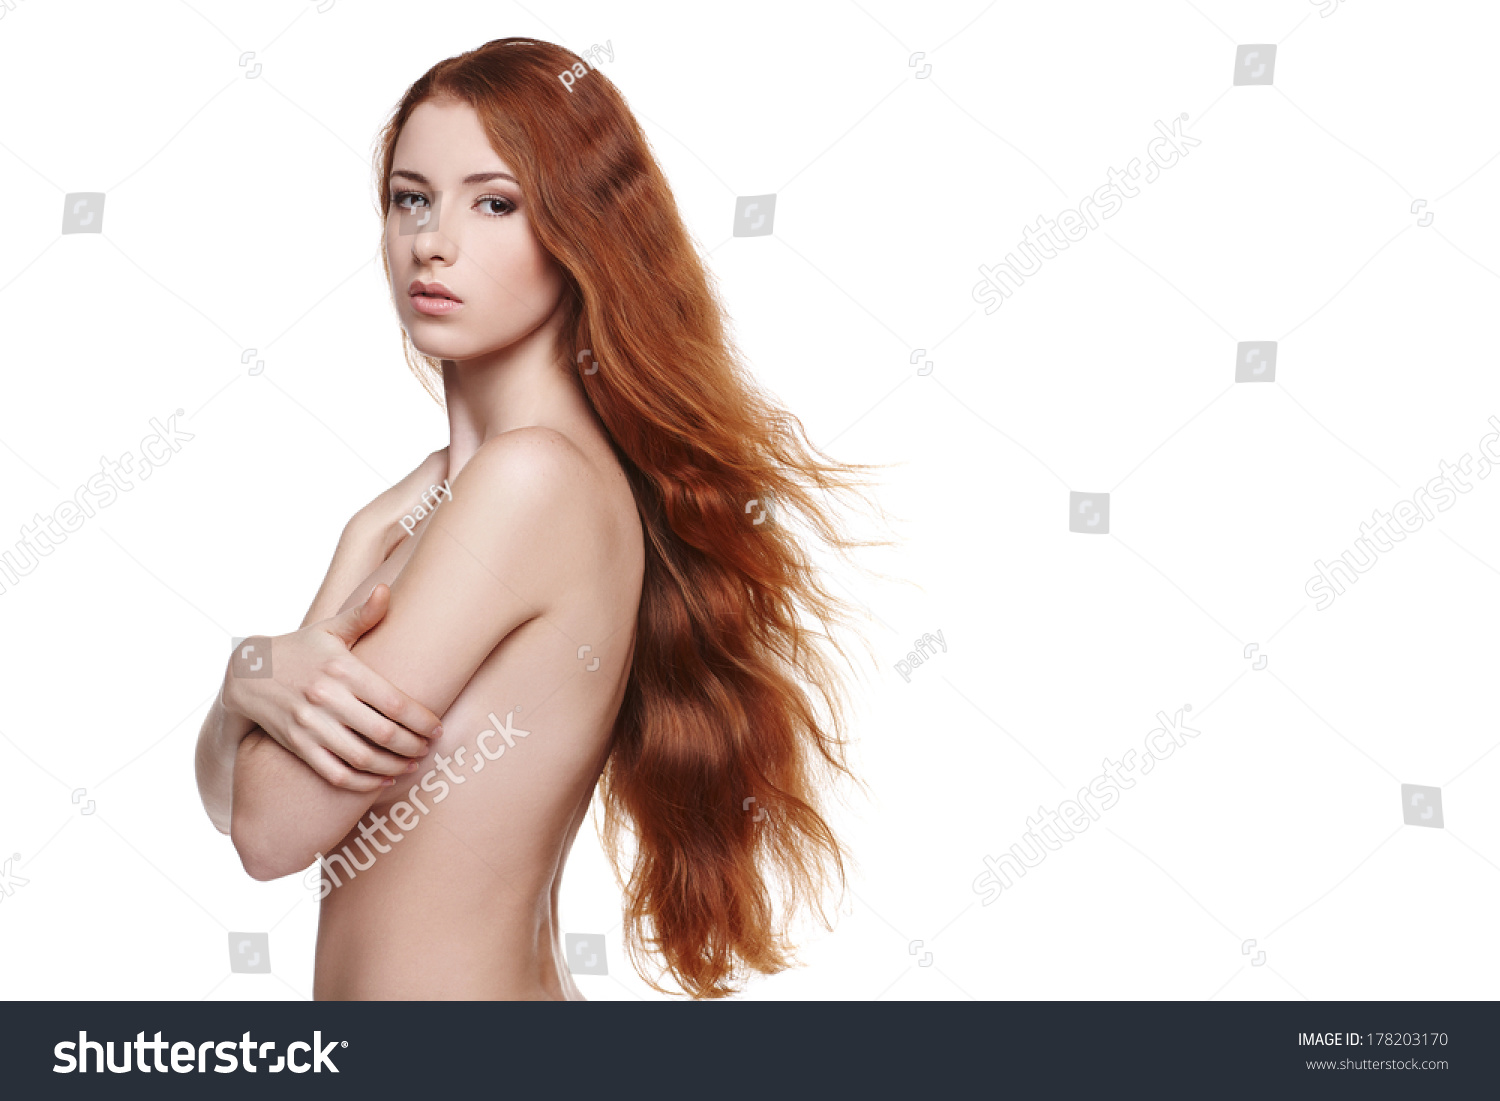 Naked Red Headed Women 5